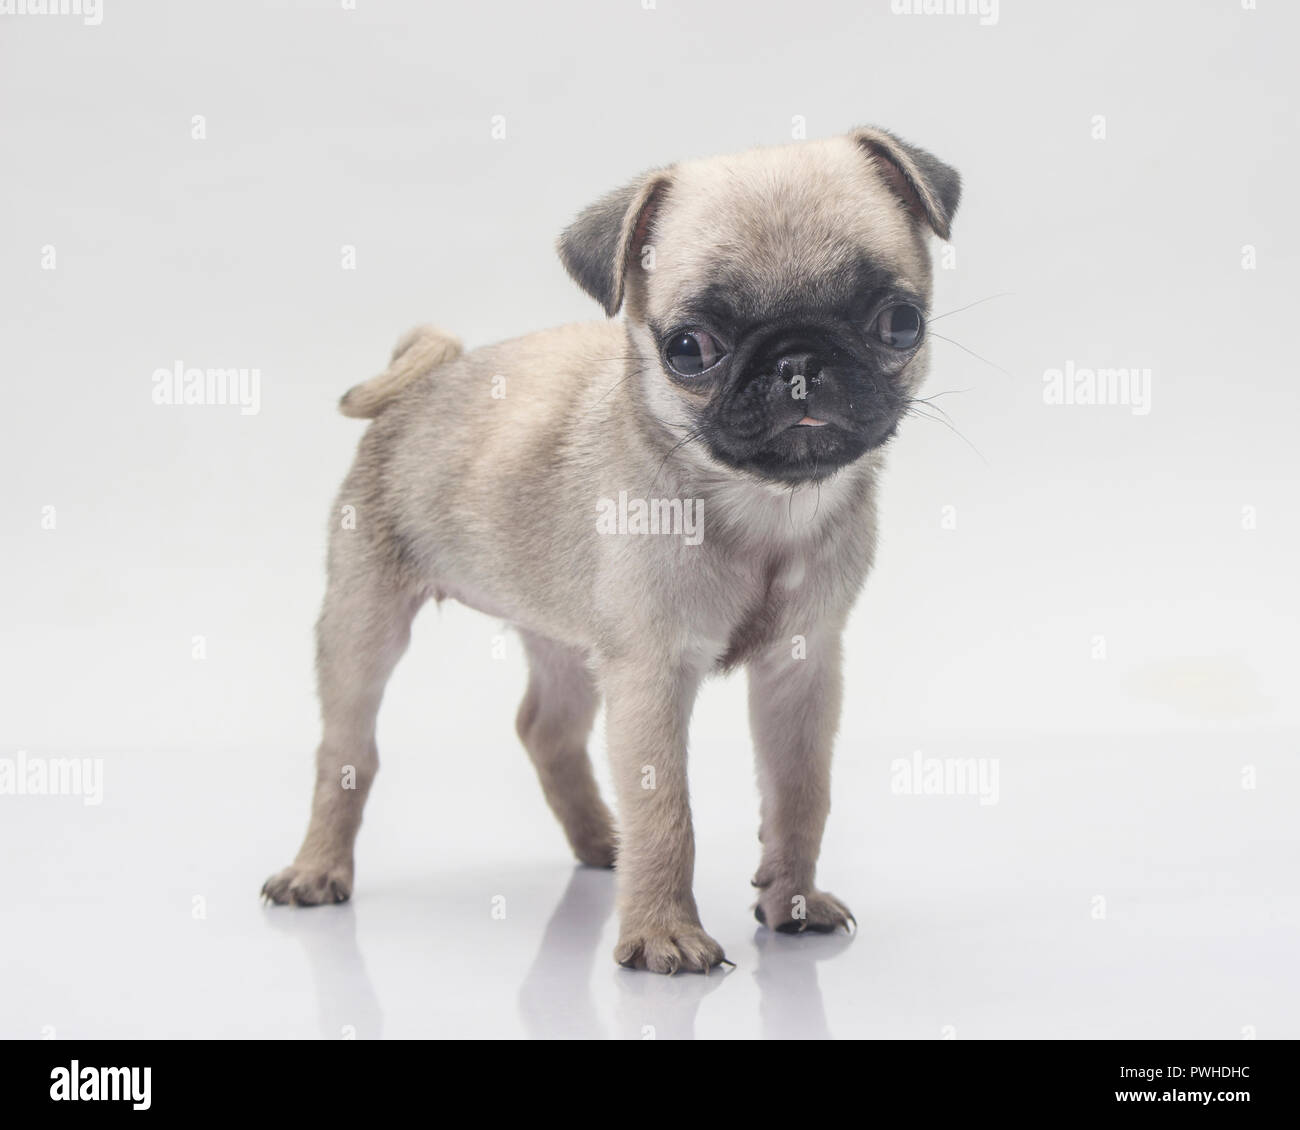 Cute pug dog on white background. - Stock Image